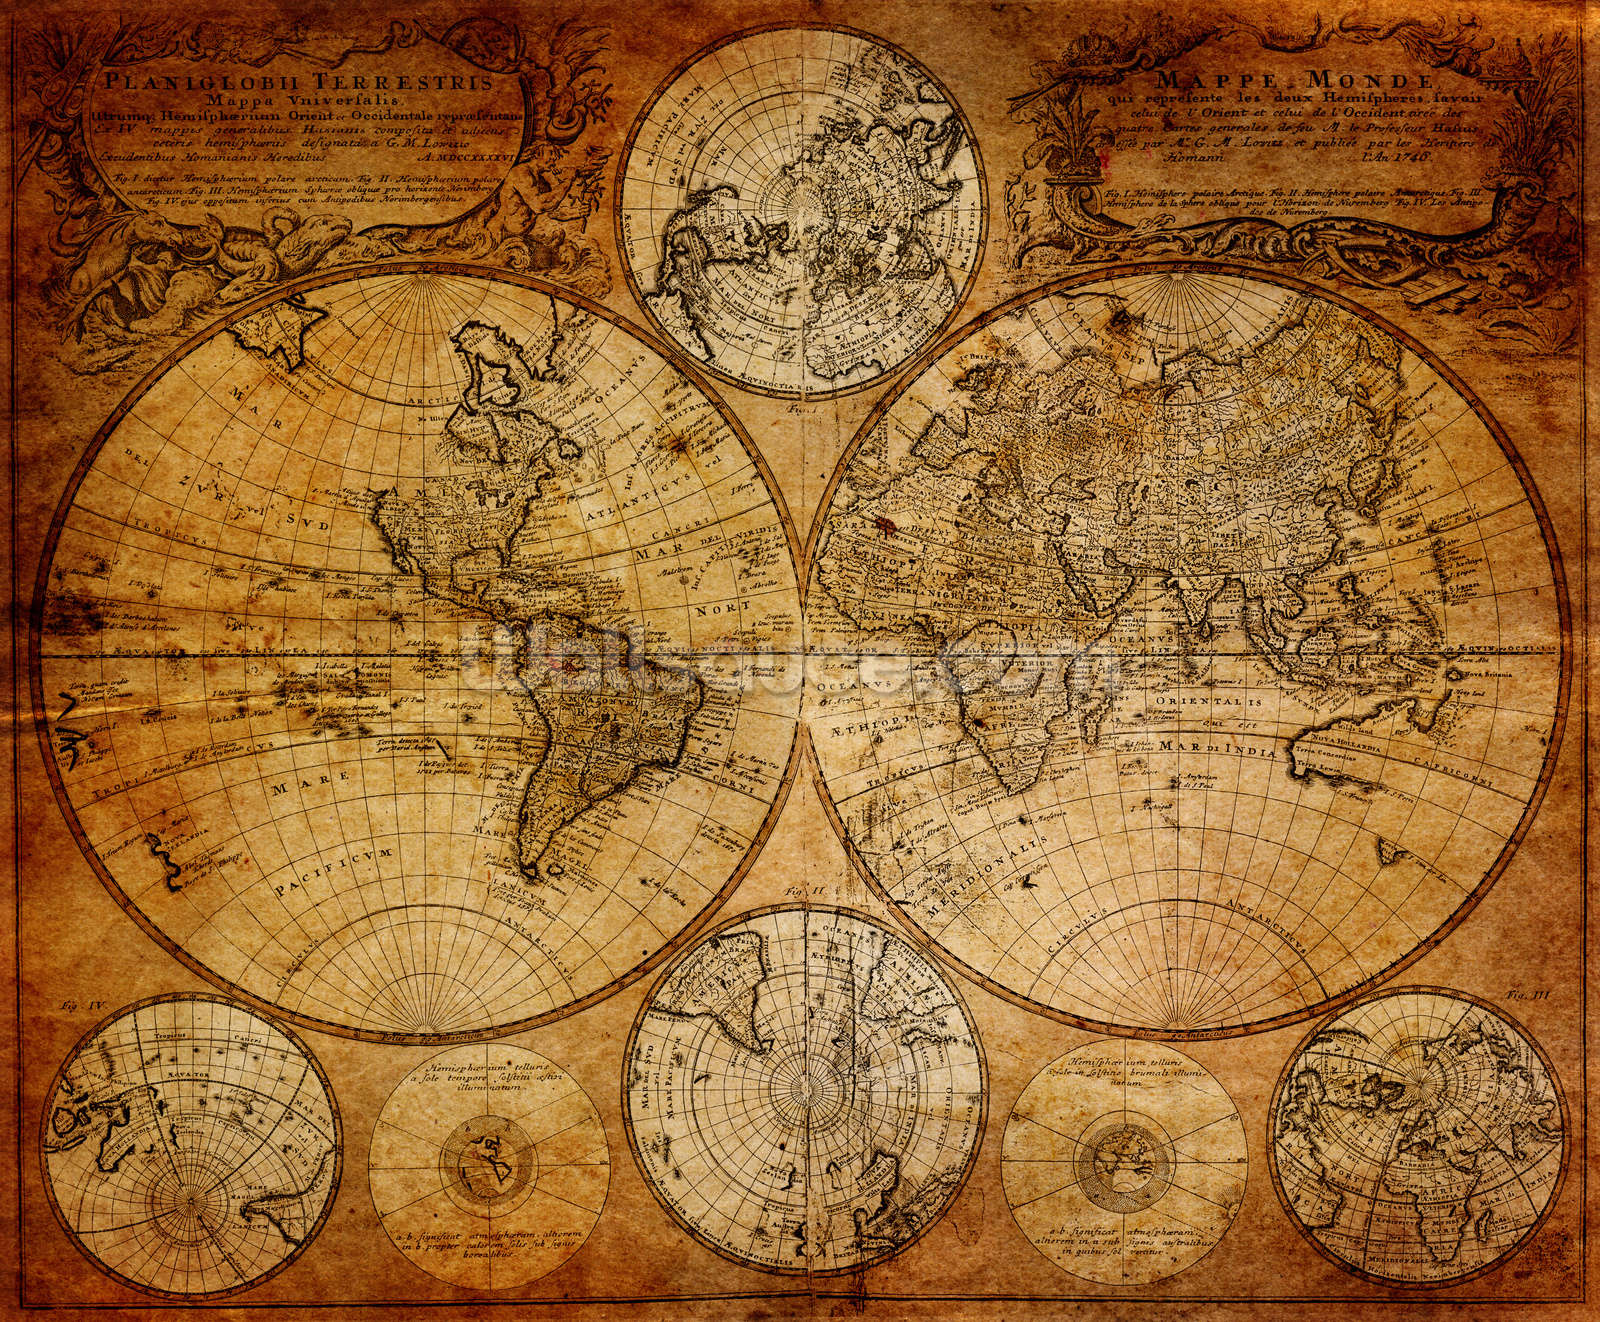 Old globe map 1746 wallpaper wall mural wallsauce usa old globe map 1746 wallpaper mural gumiabroncs Image collections